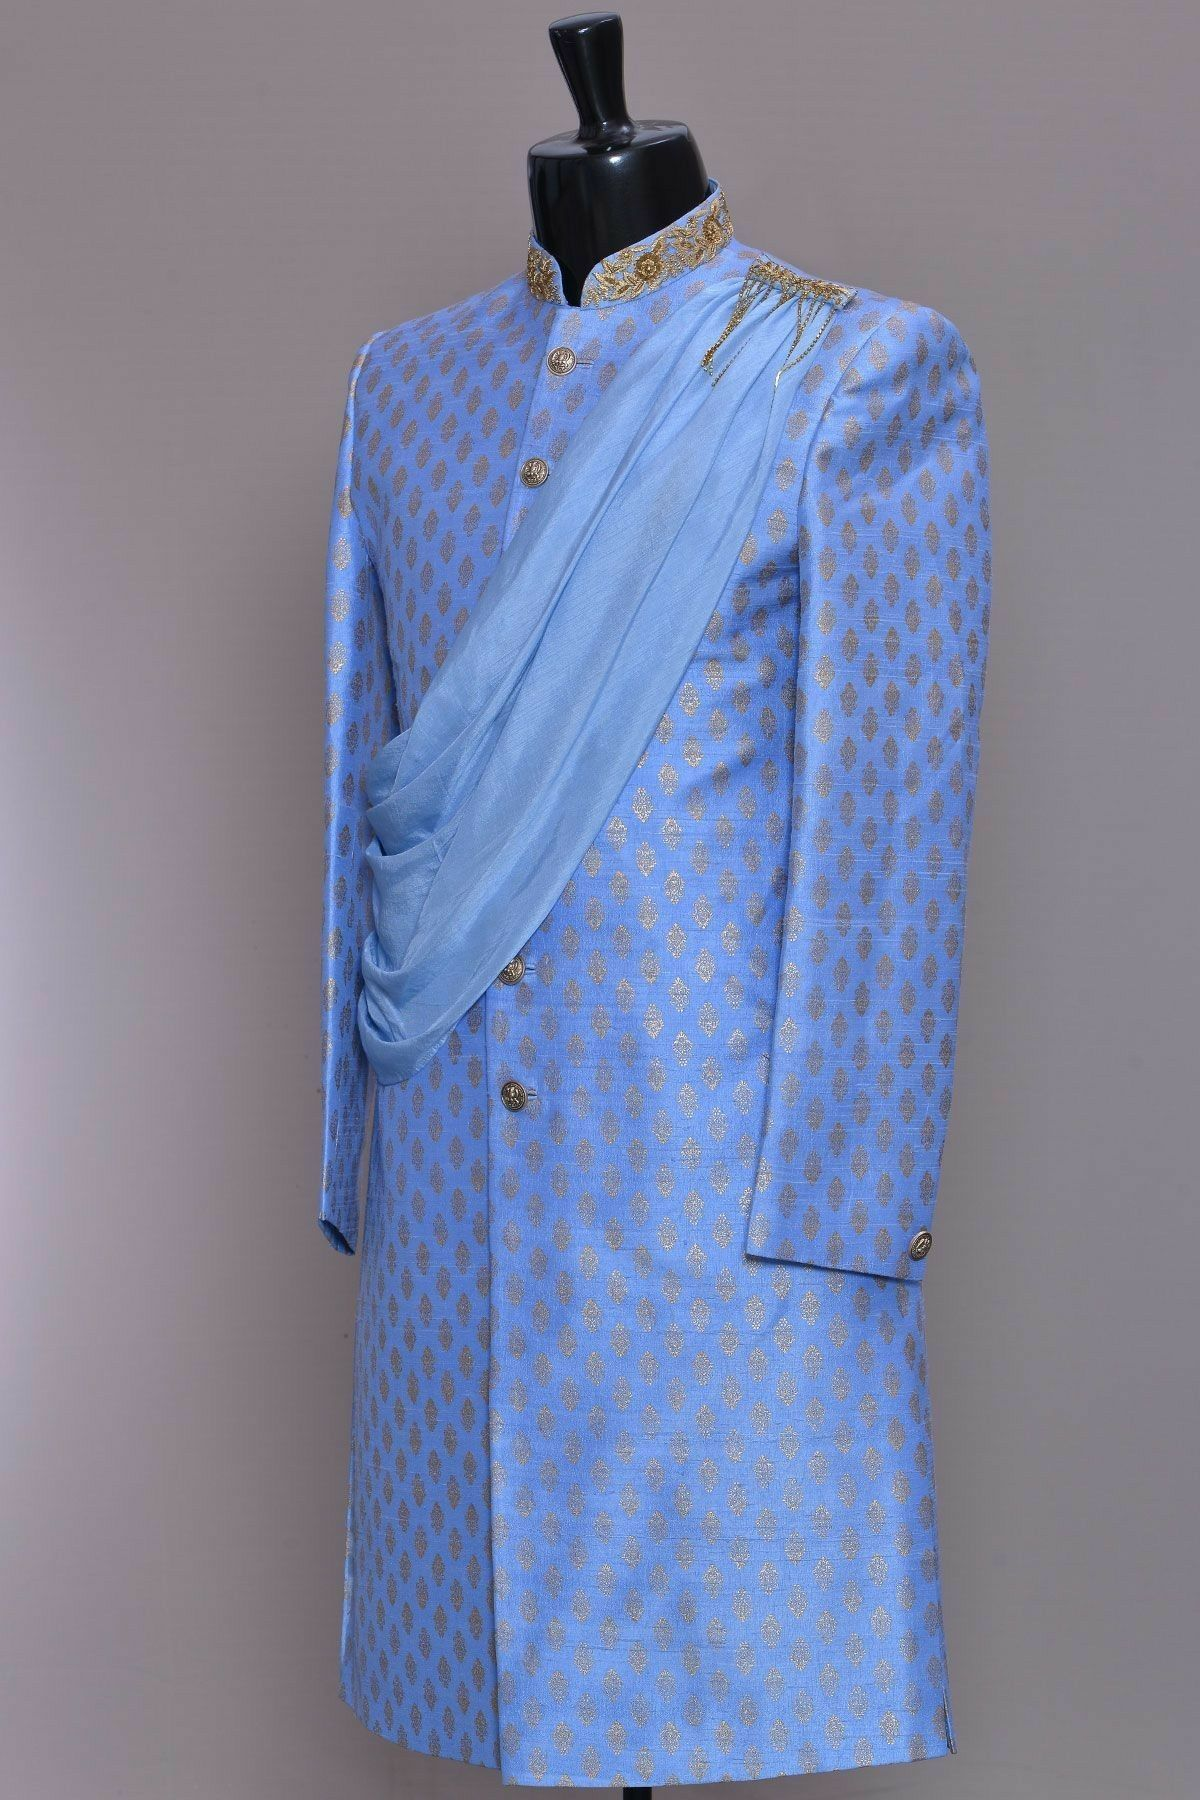 Blue shaded indian traditional outfit indianfashion indianwear